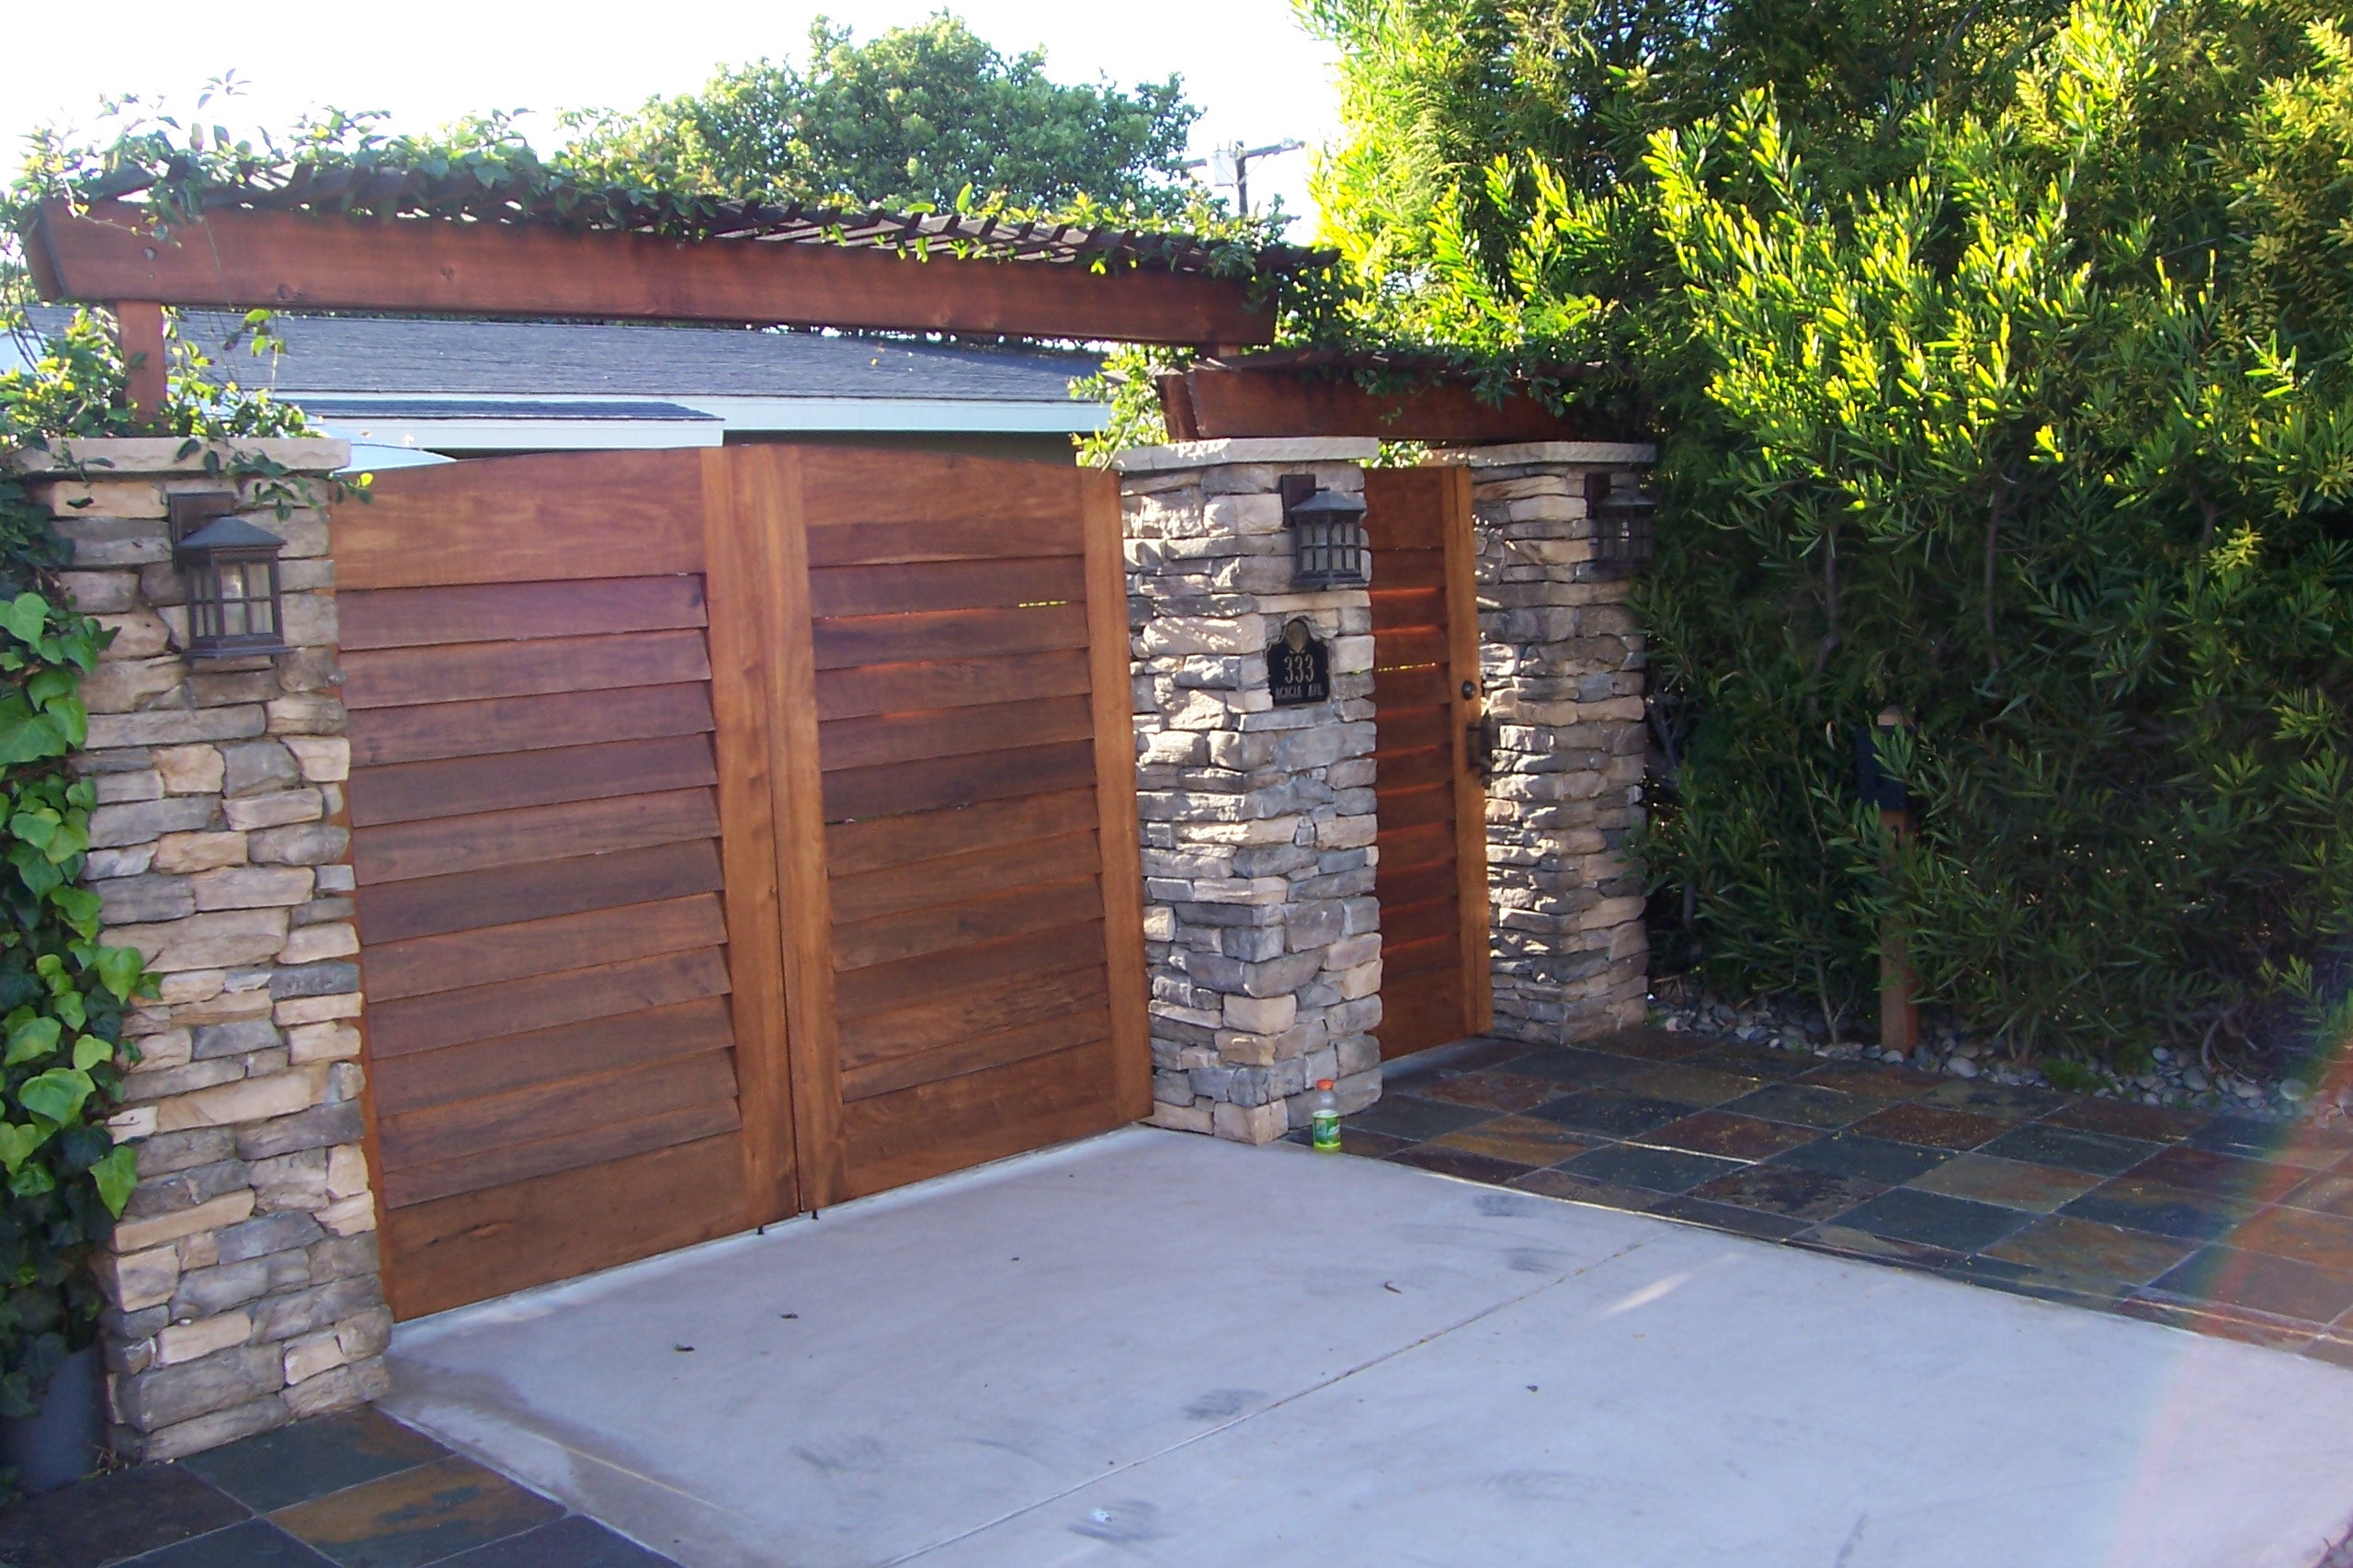 Front Yard Fence Designs Creative fences gates and enclosures in san diego part 2 gate design with wooden driveway and people gates workwithnaturefo